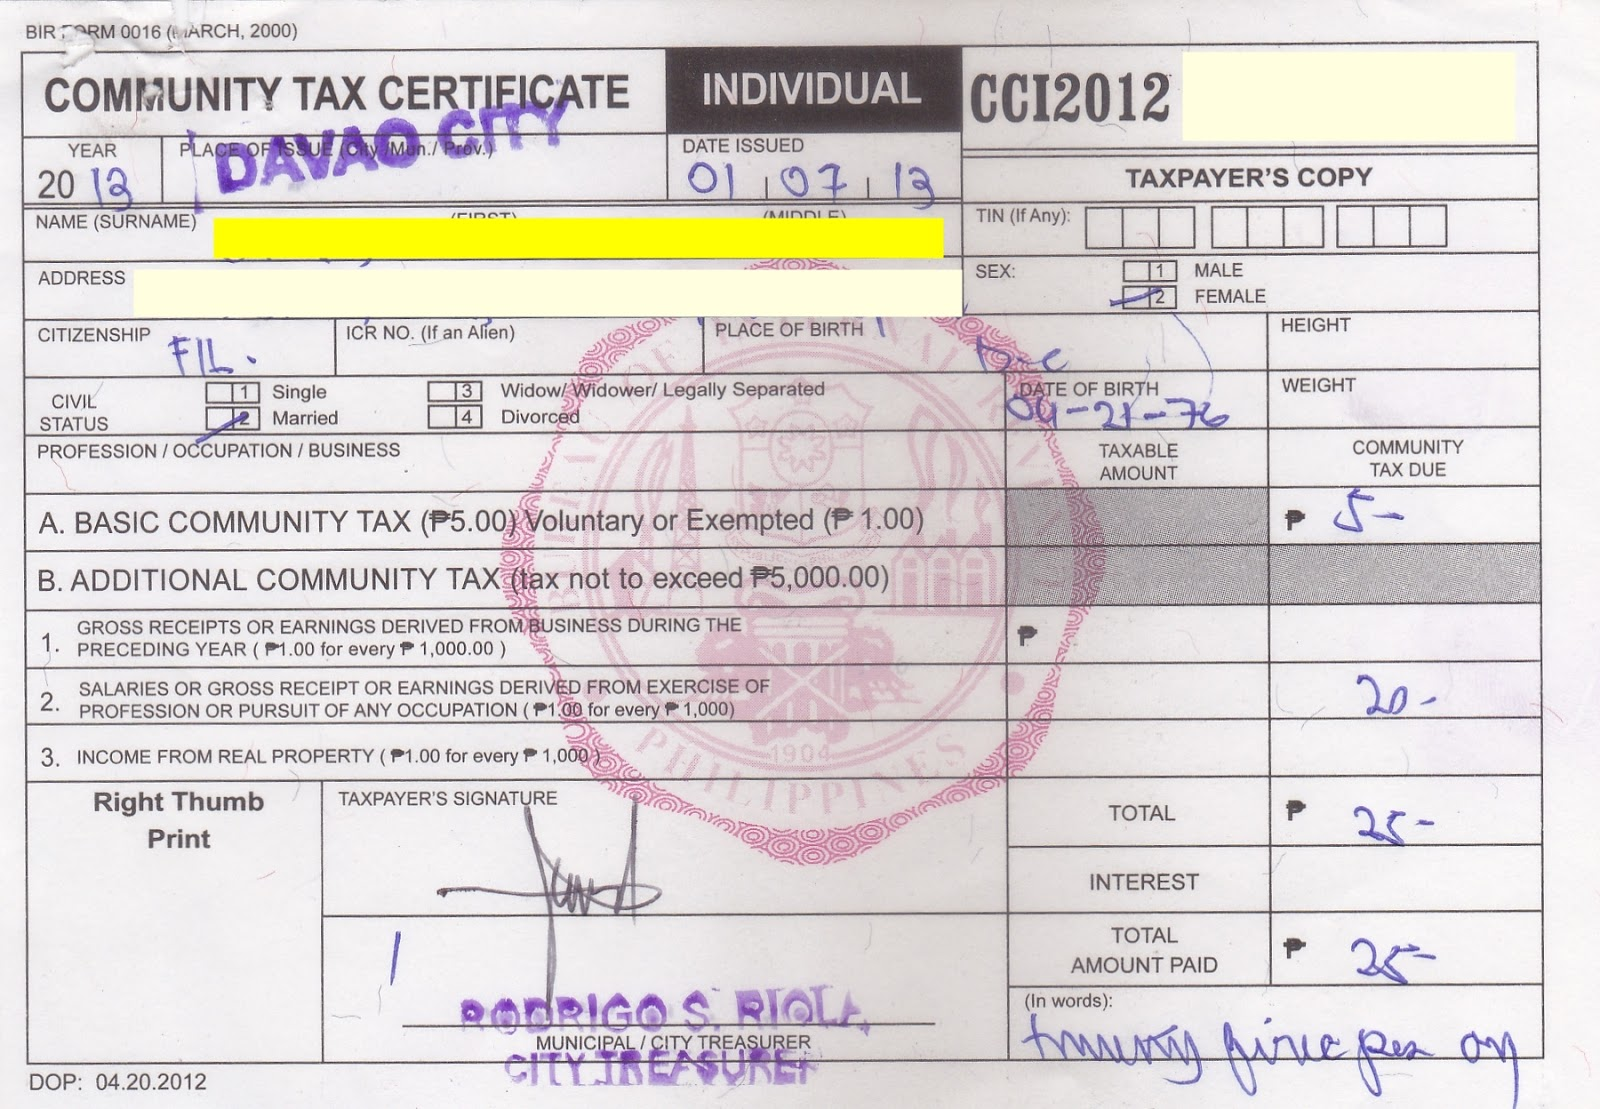 How to get a Police Clearance in Davao City - The CHARM Princess